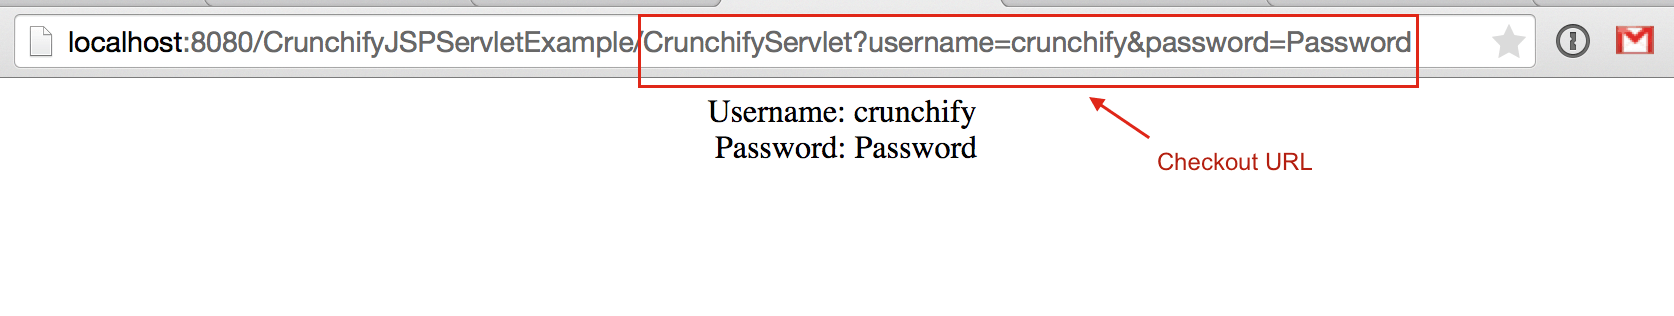 Crunchify Servlet Result